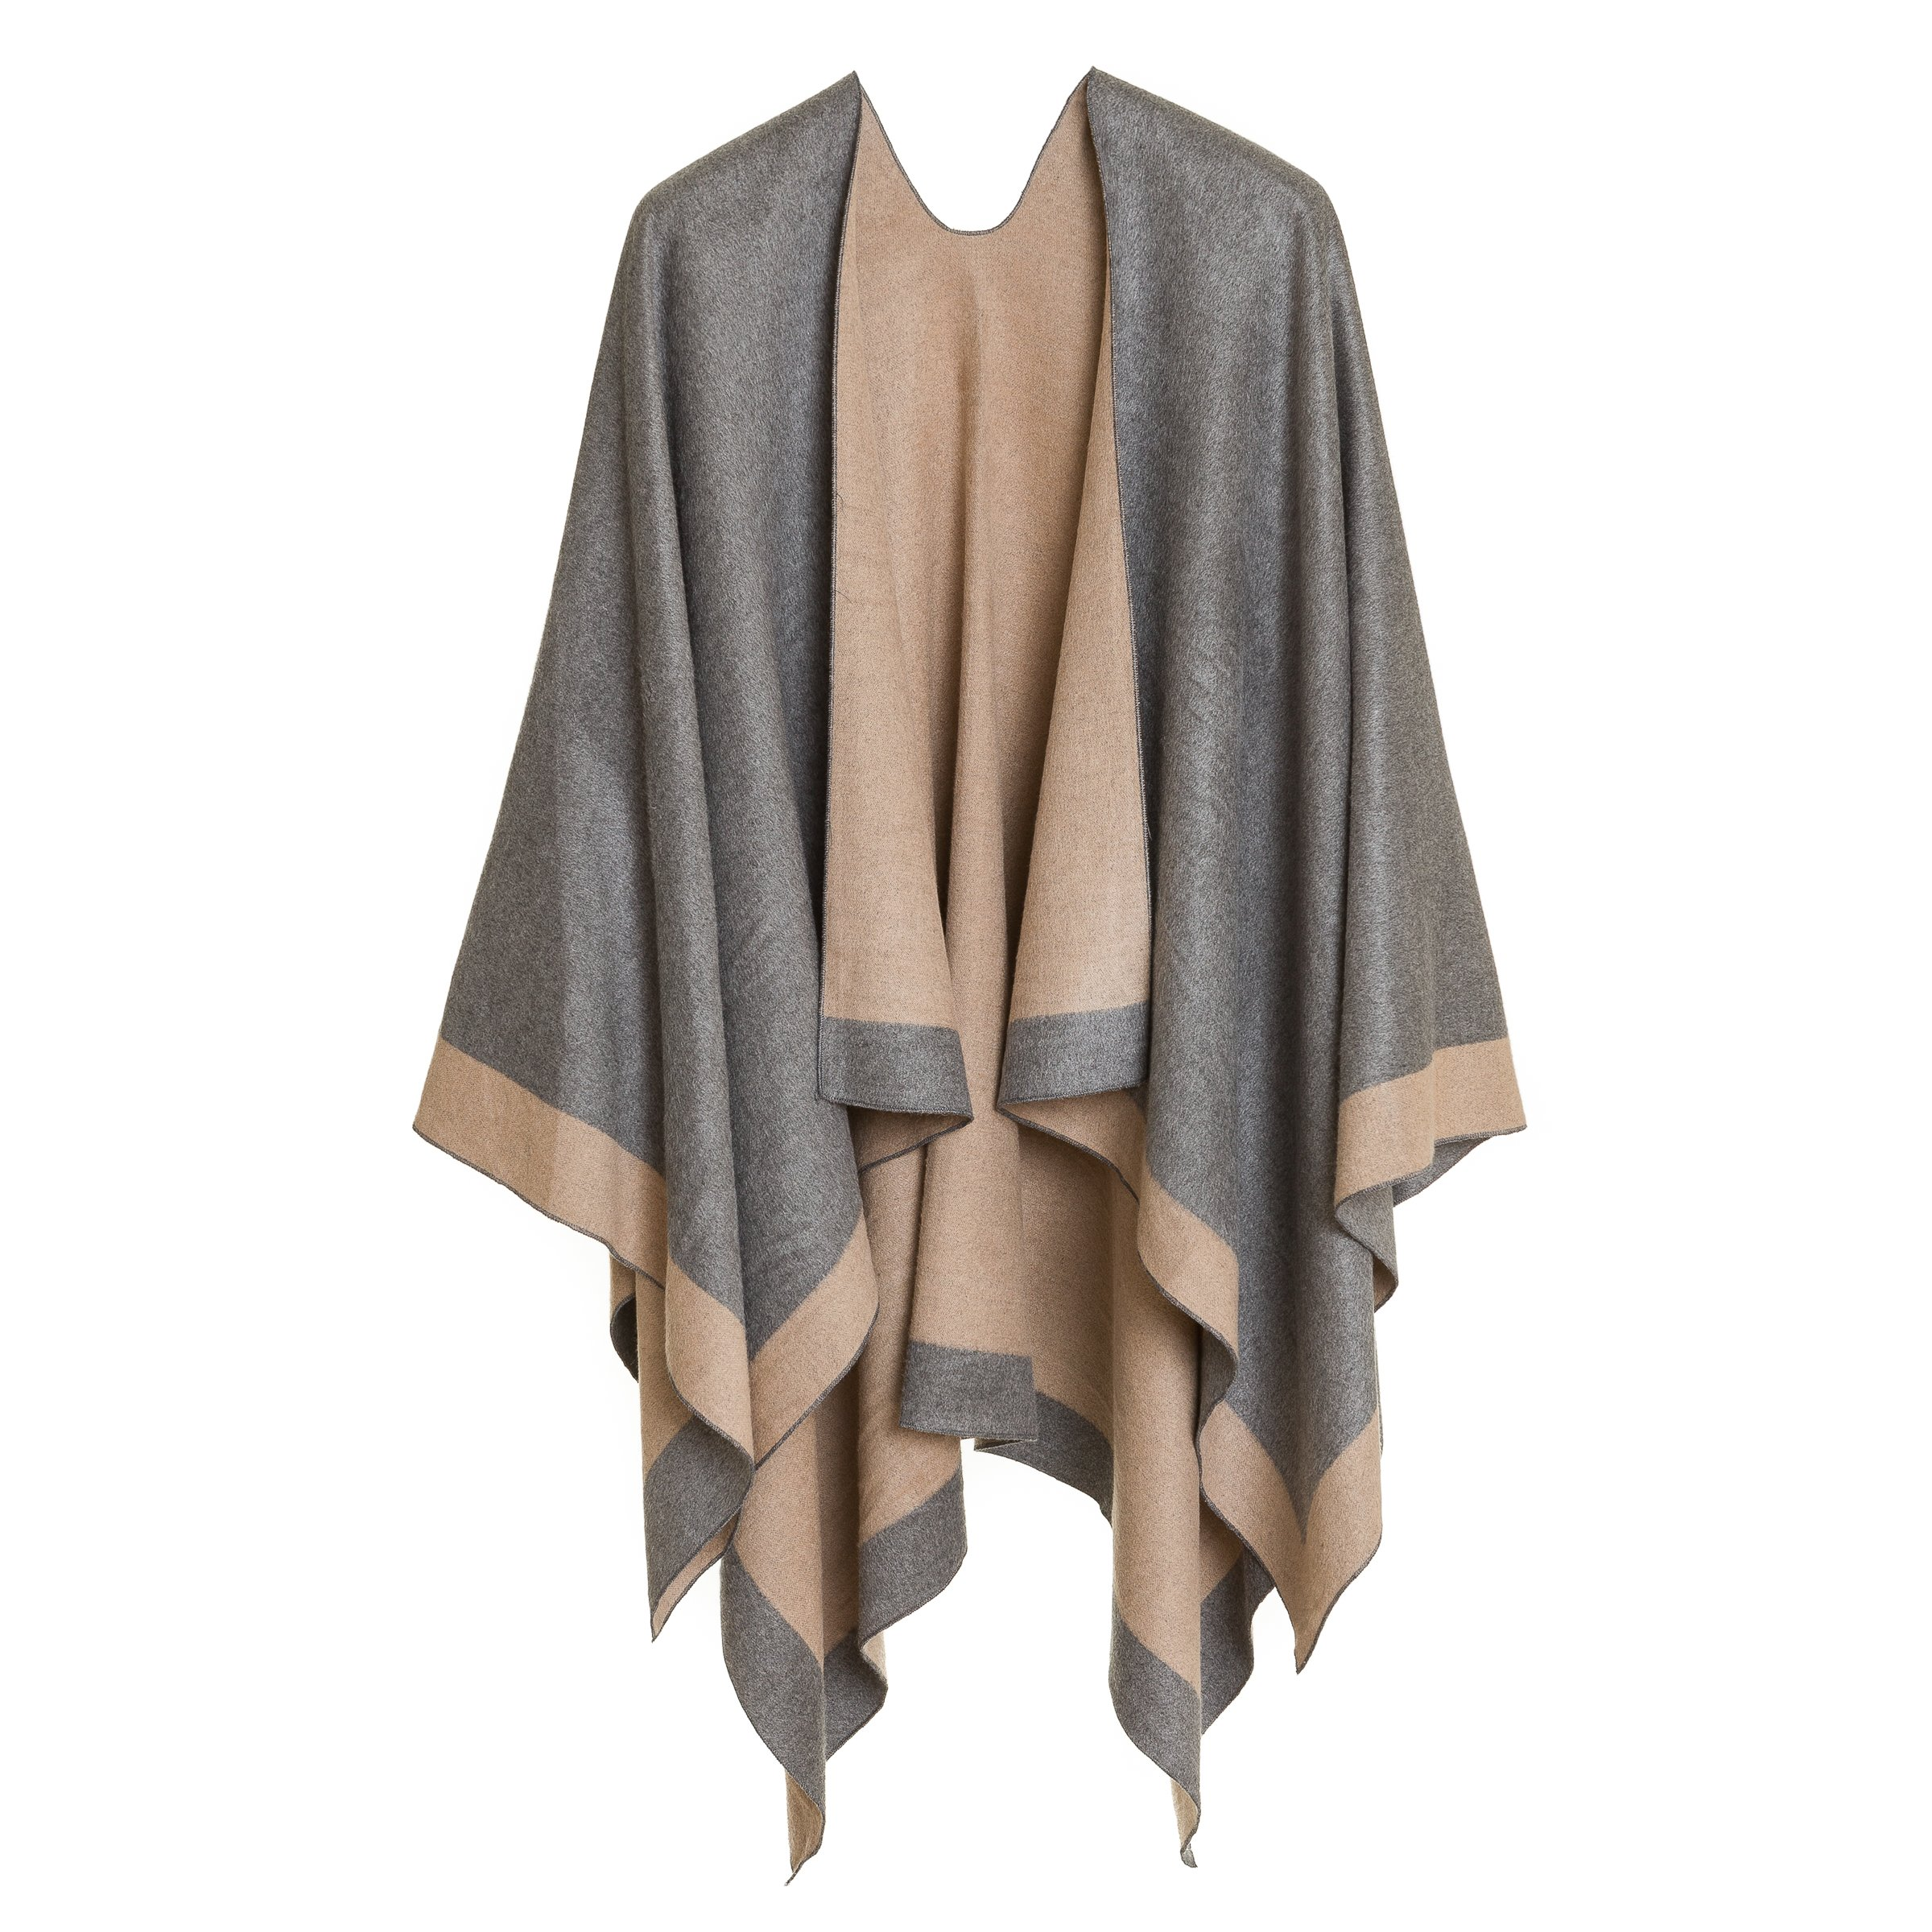 Cardigan Poncho Cape: Women Elegant Gray Beige Reversible Cardigan Shawl Wrap Sweater Coat for Winter (Light Gray Beige)